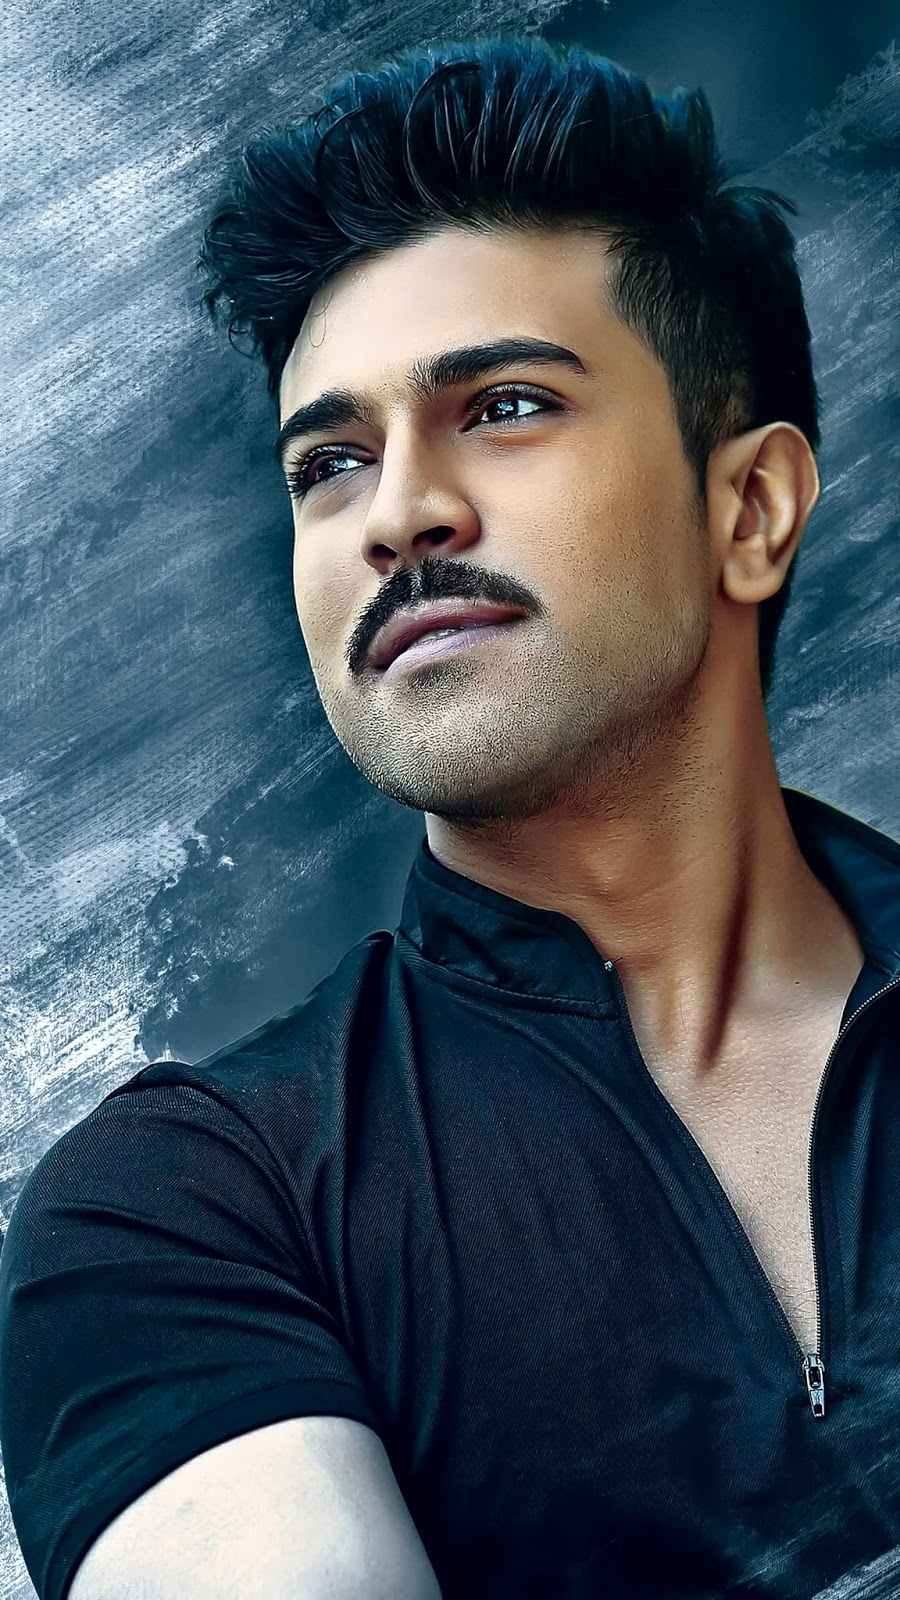 Awesome Editing Zone Ram Charan New 4k Ultra Hd Quality Wallpapers 2017